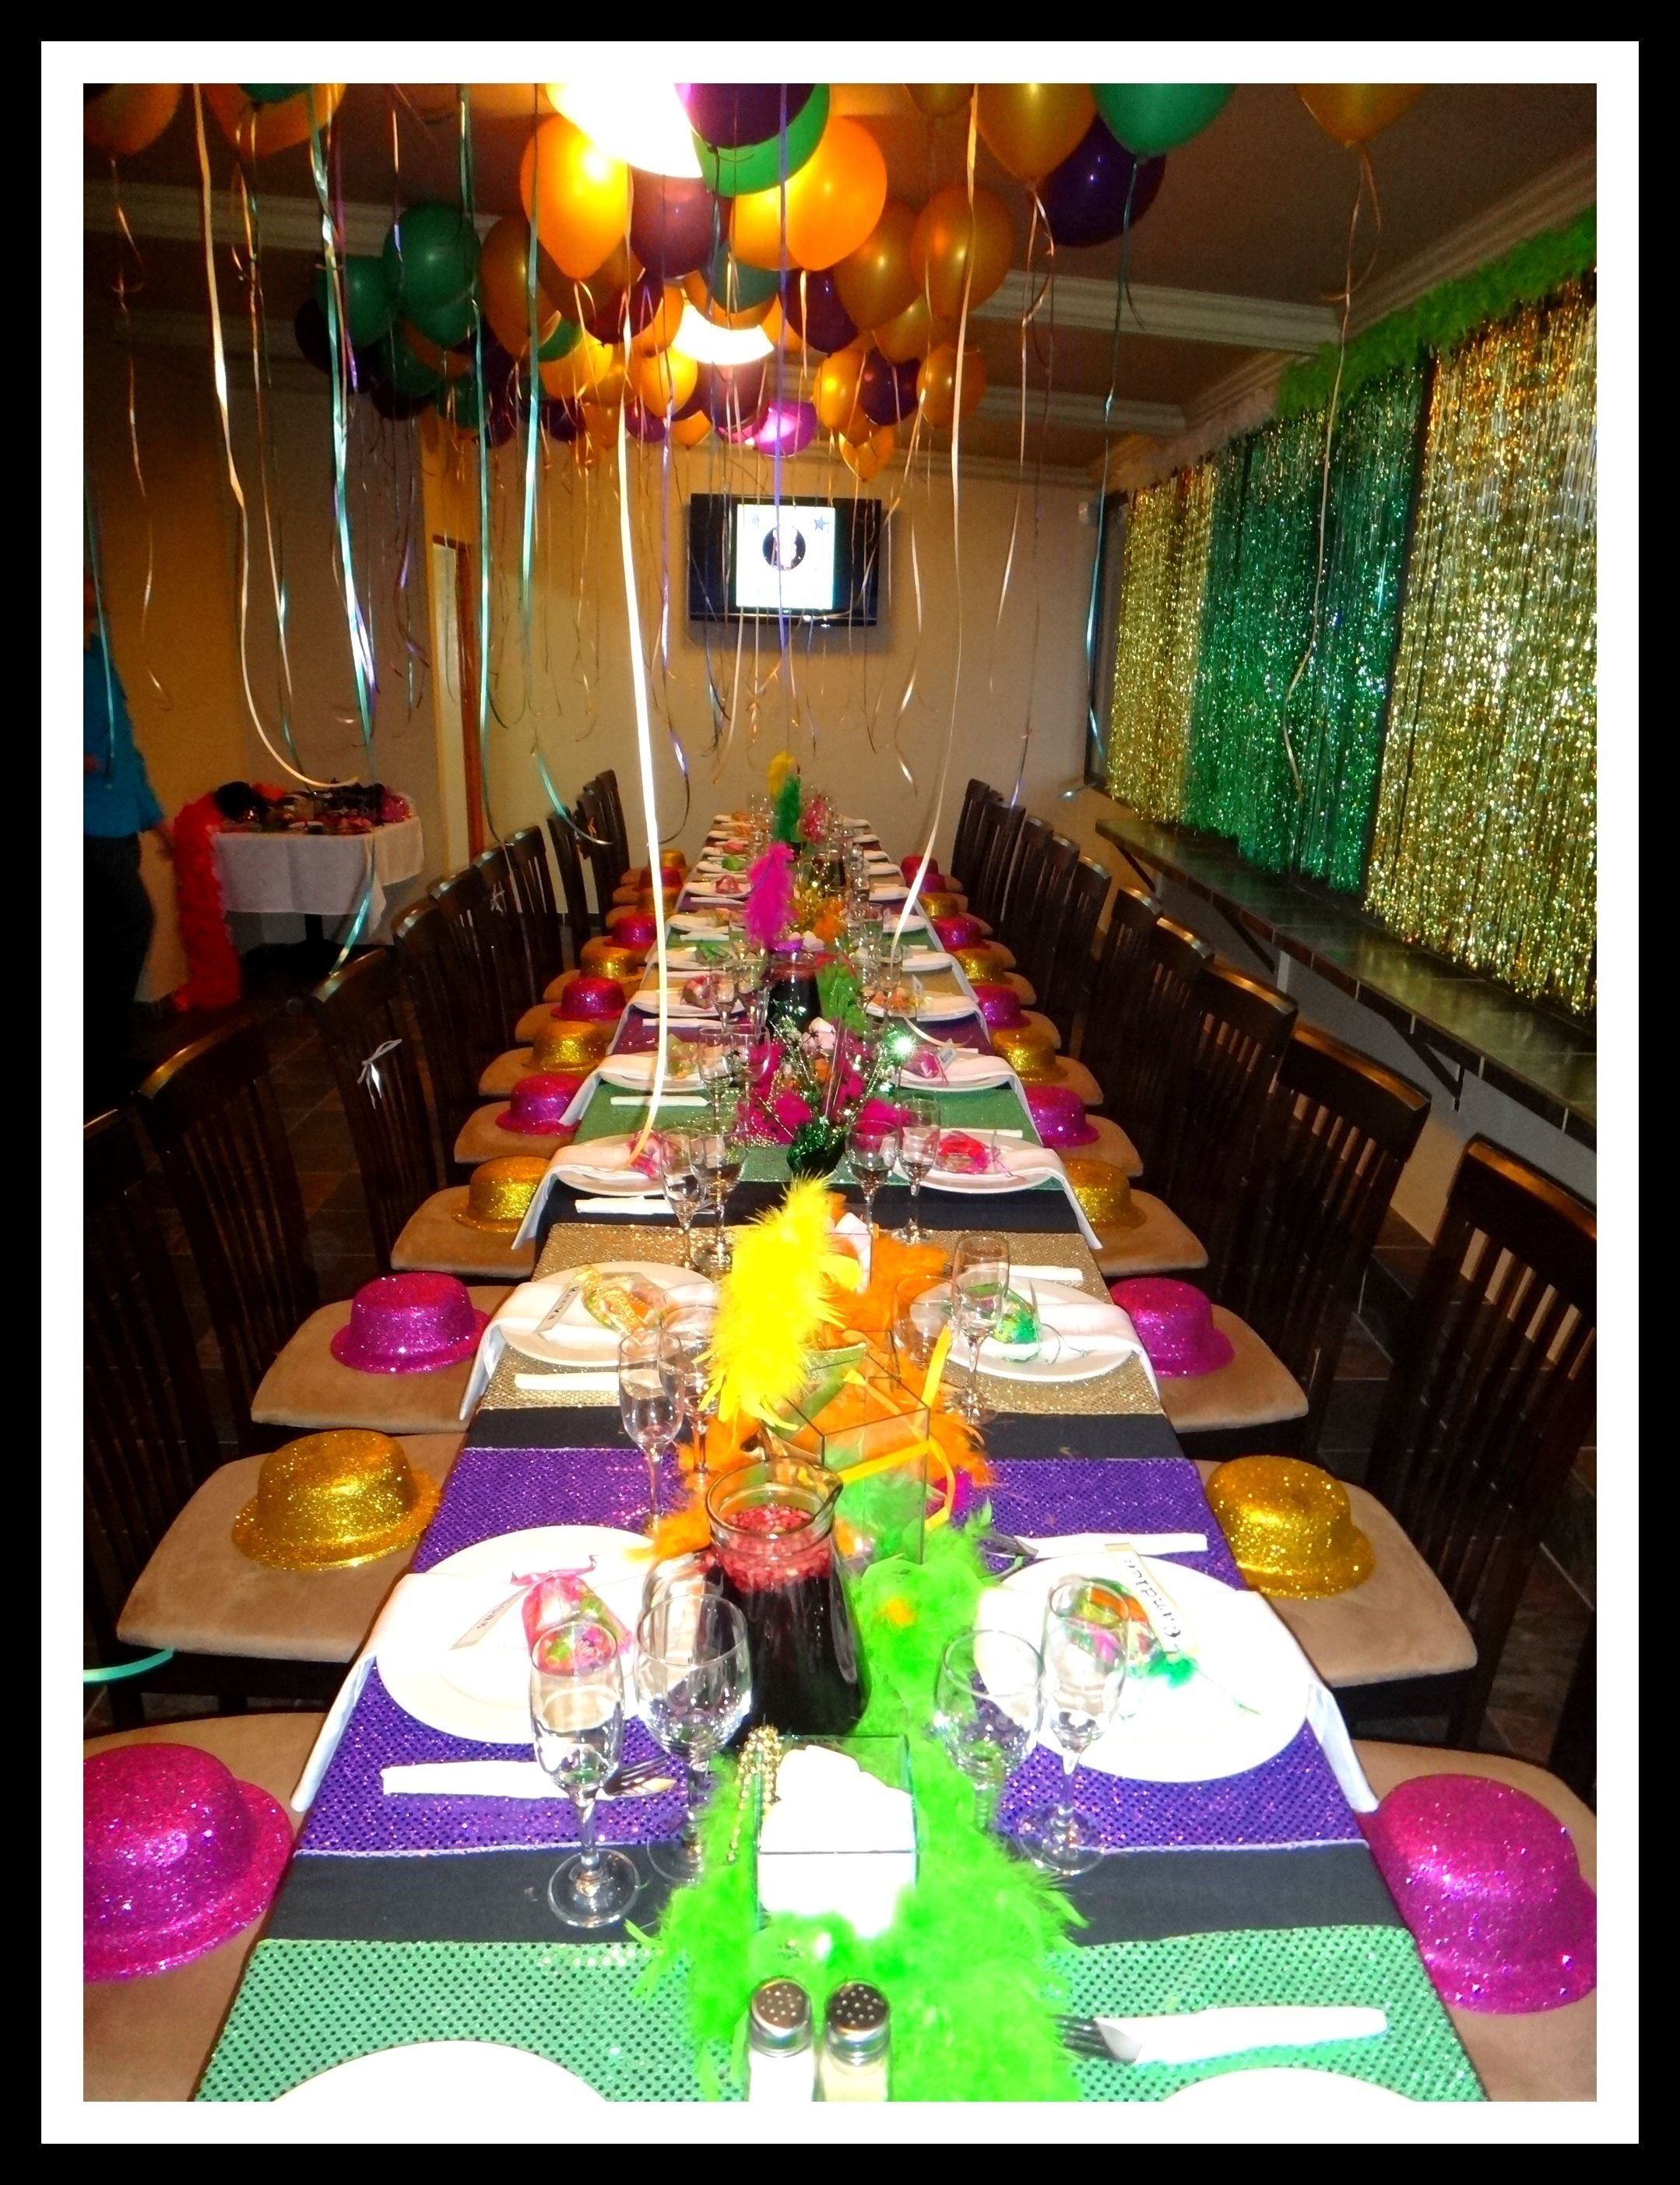 10 Most Recommended Mardi Gras Ideas For A Party 30th birthday party mardi gras theme tables birthdays pinterest 2020